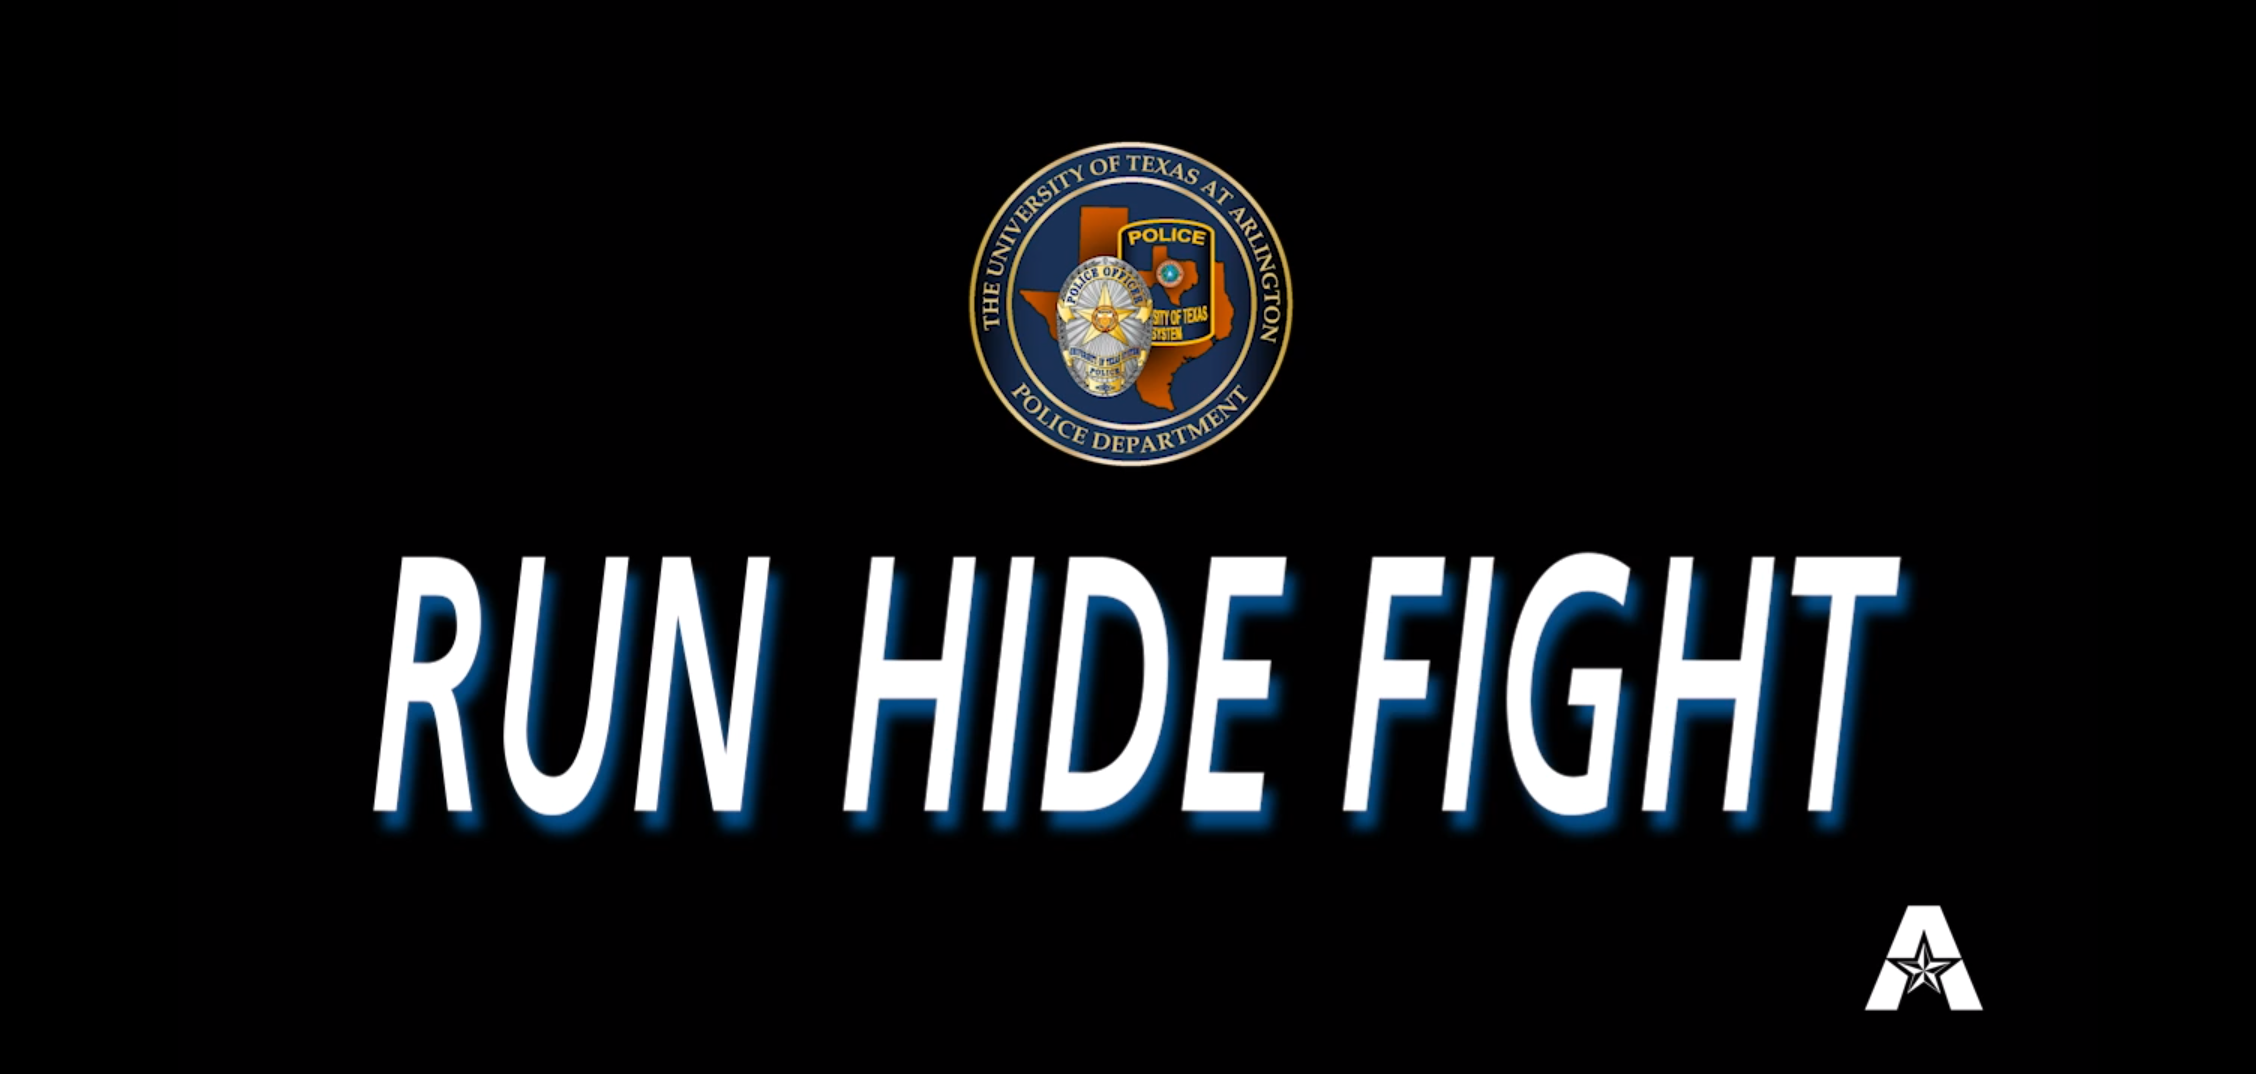 Run Hide Fight graphic.jpg